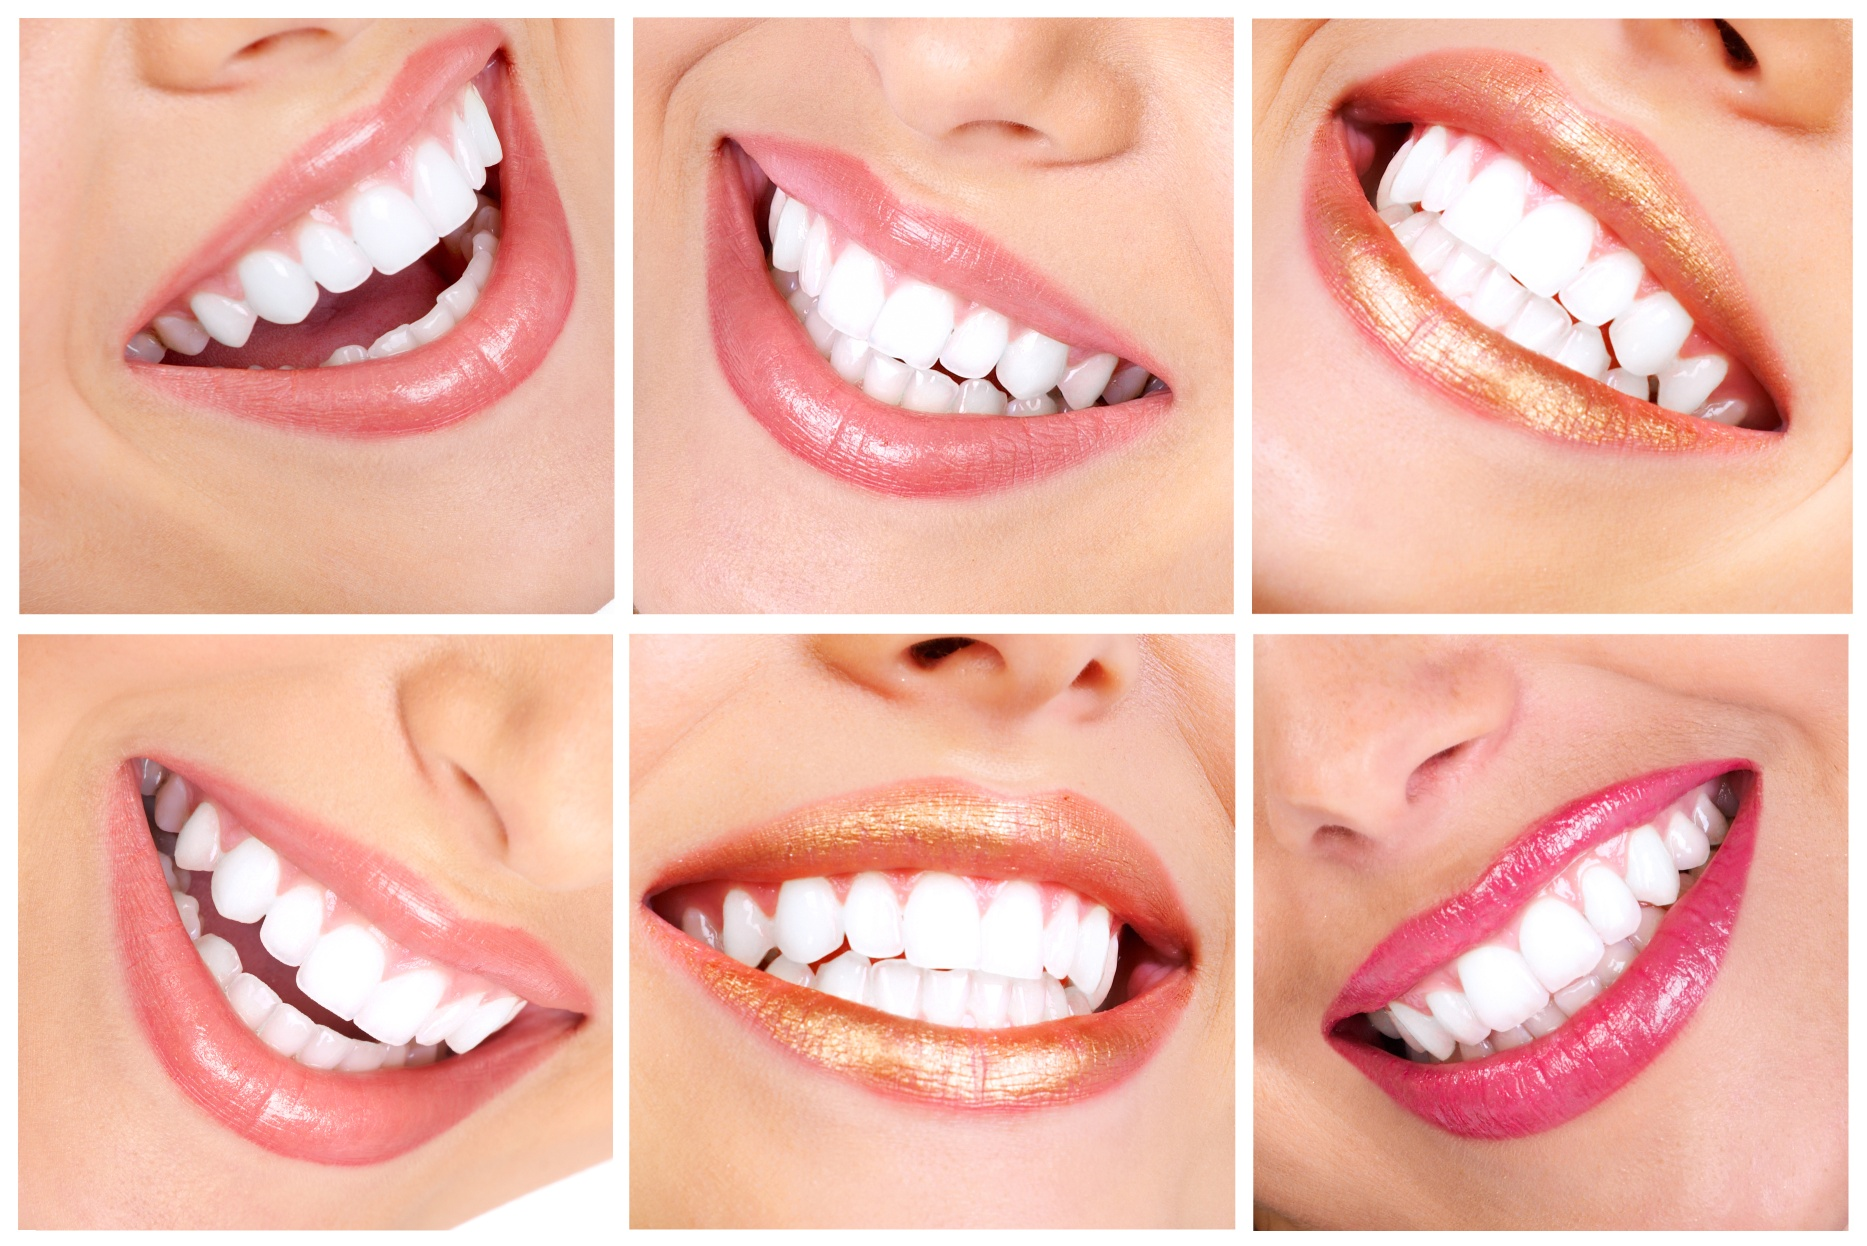 multi-smile_dental